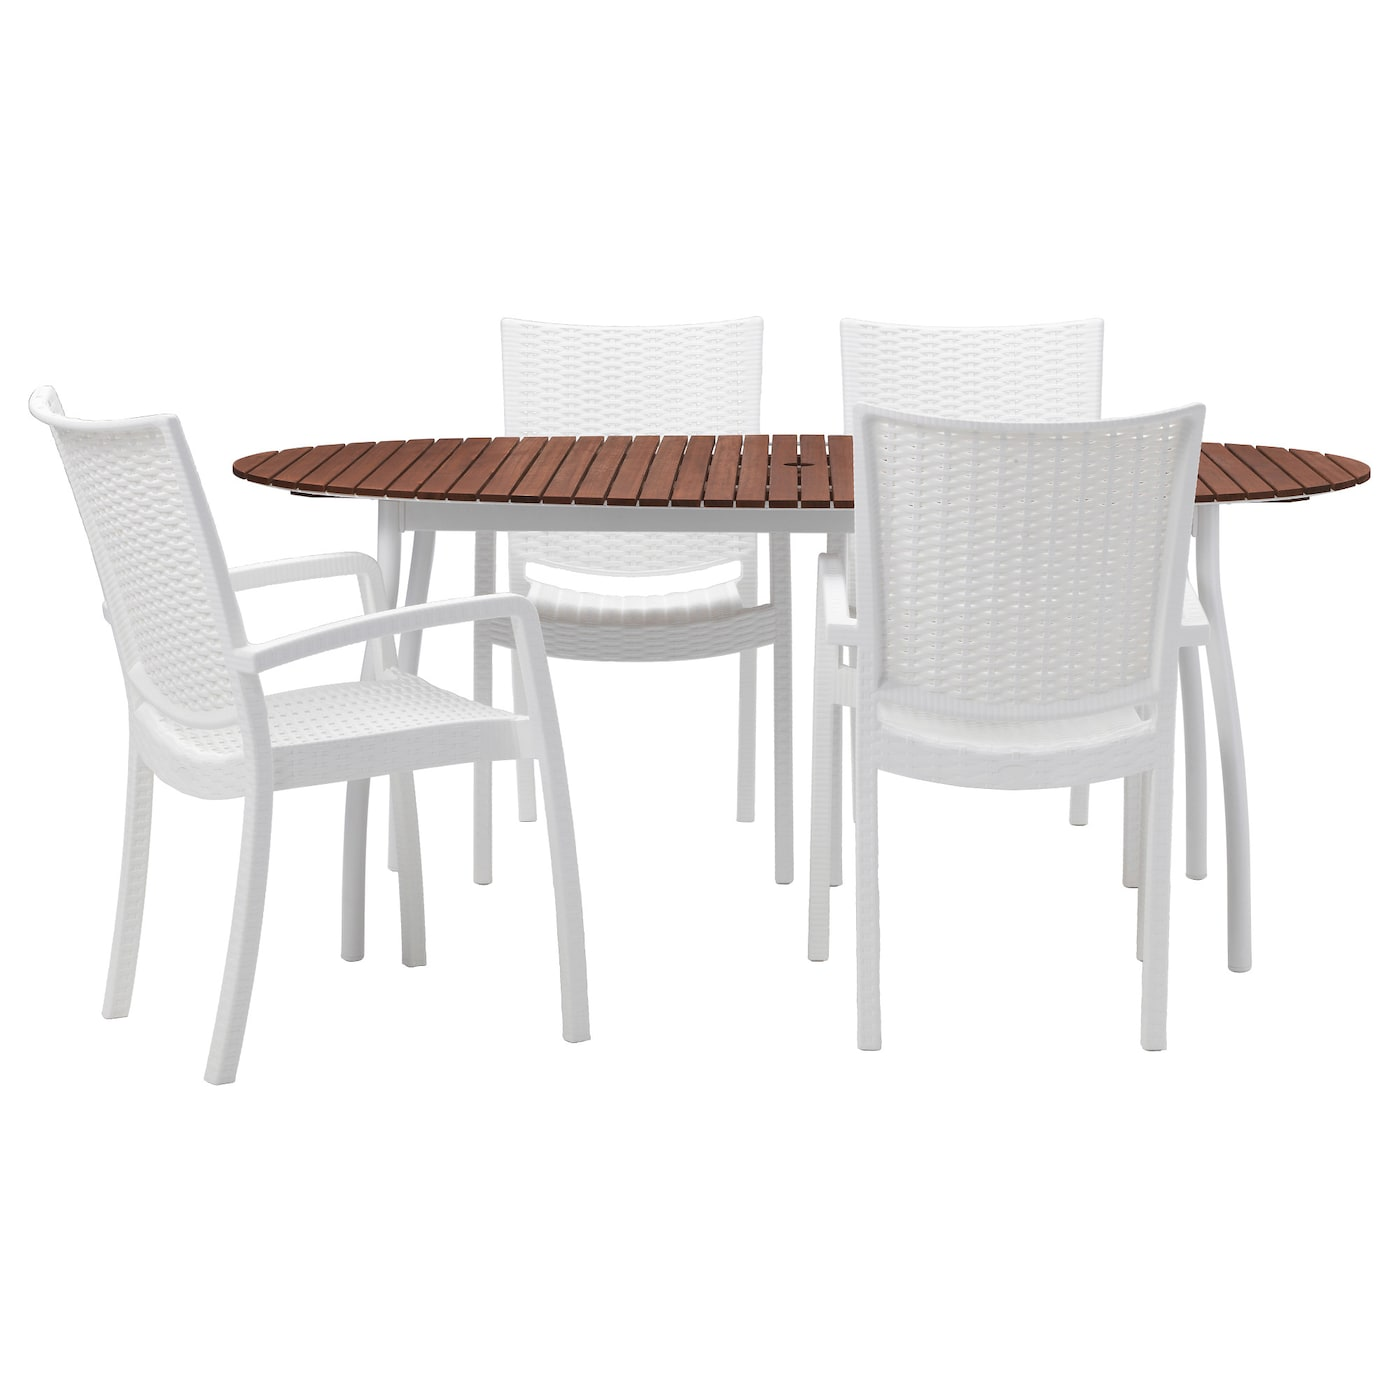 IKEA INNAMO/VINDALSÖ table+4 chairs w armrests, outdoor